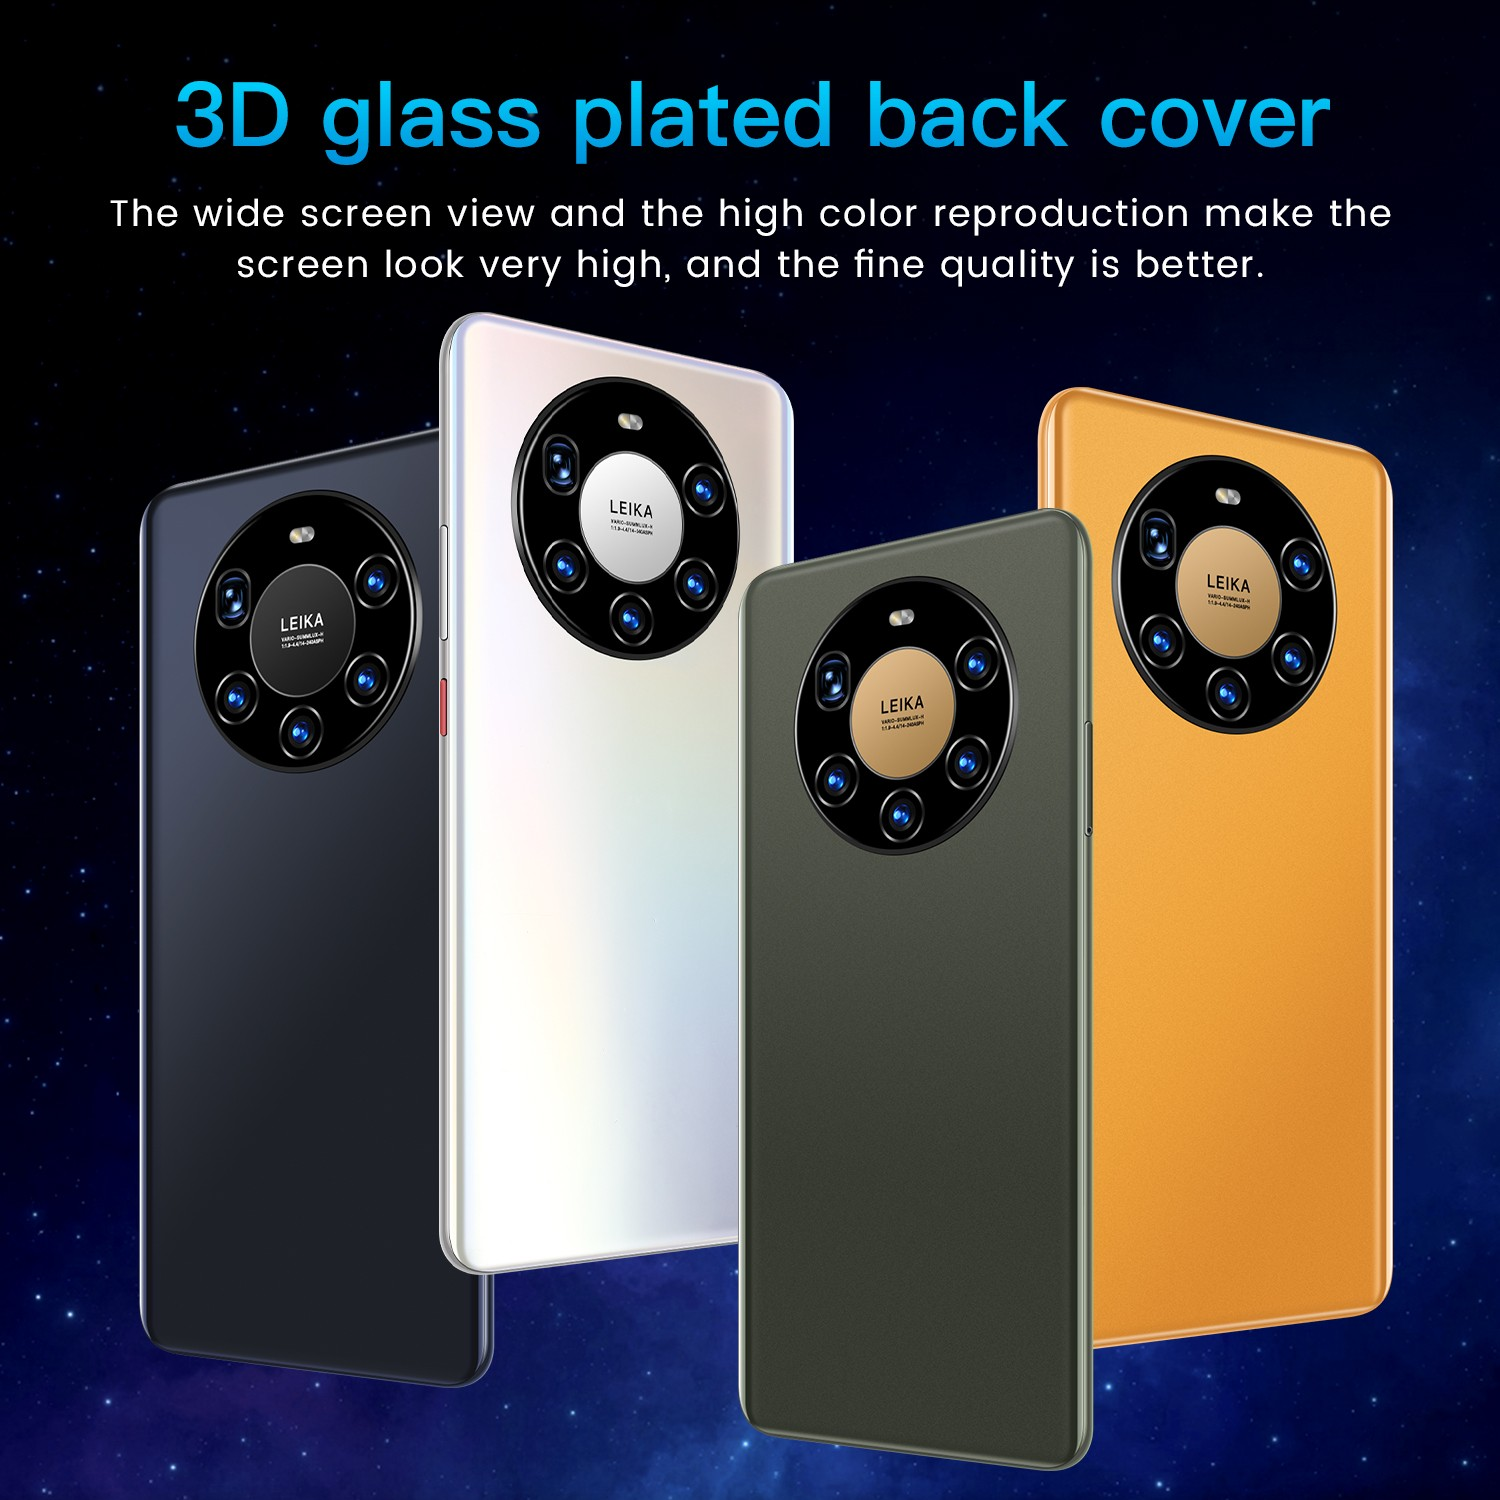 Mate40 Pro+ Smartphone 3D glass plated back cover